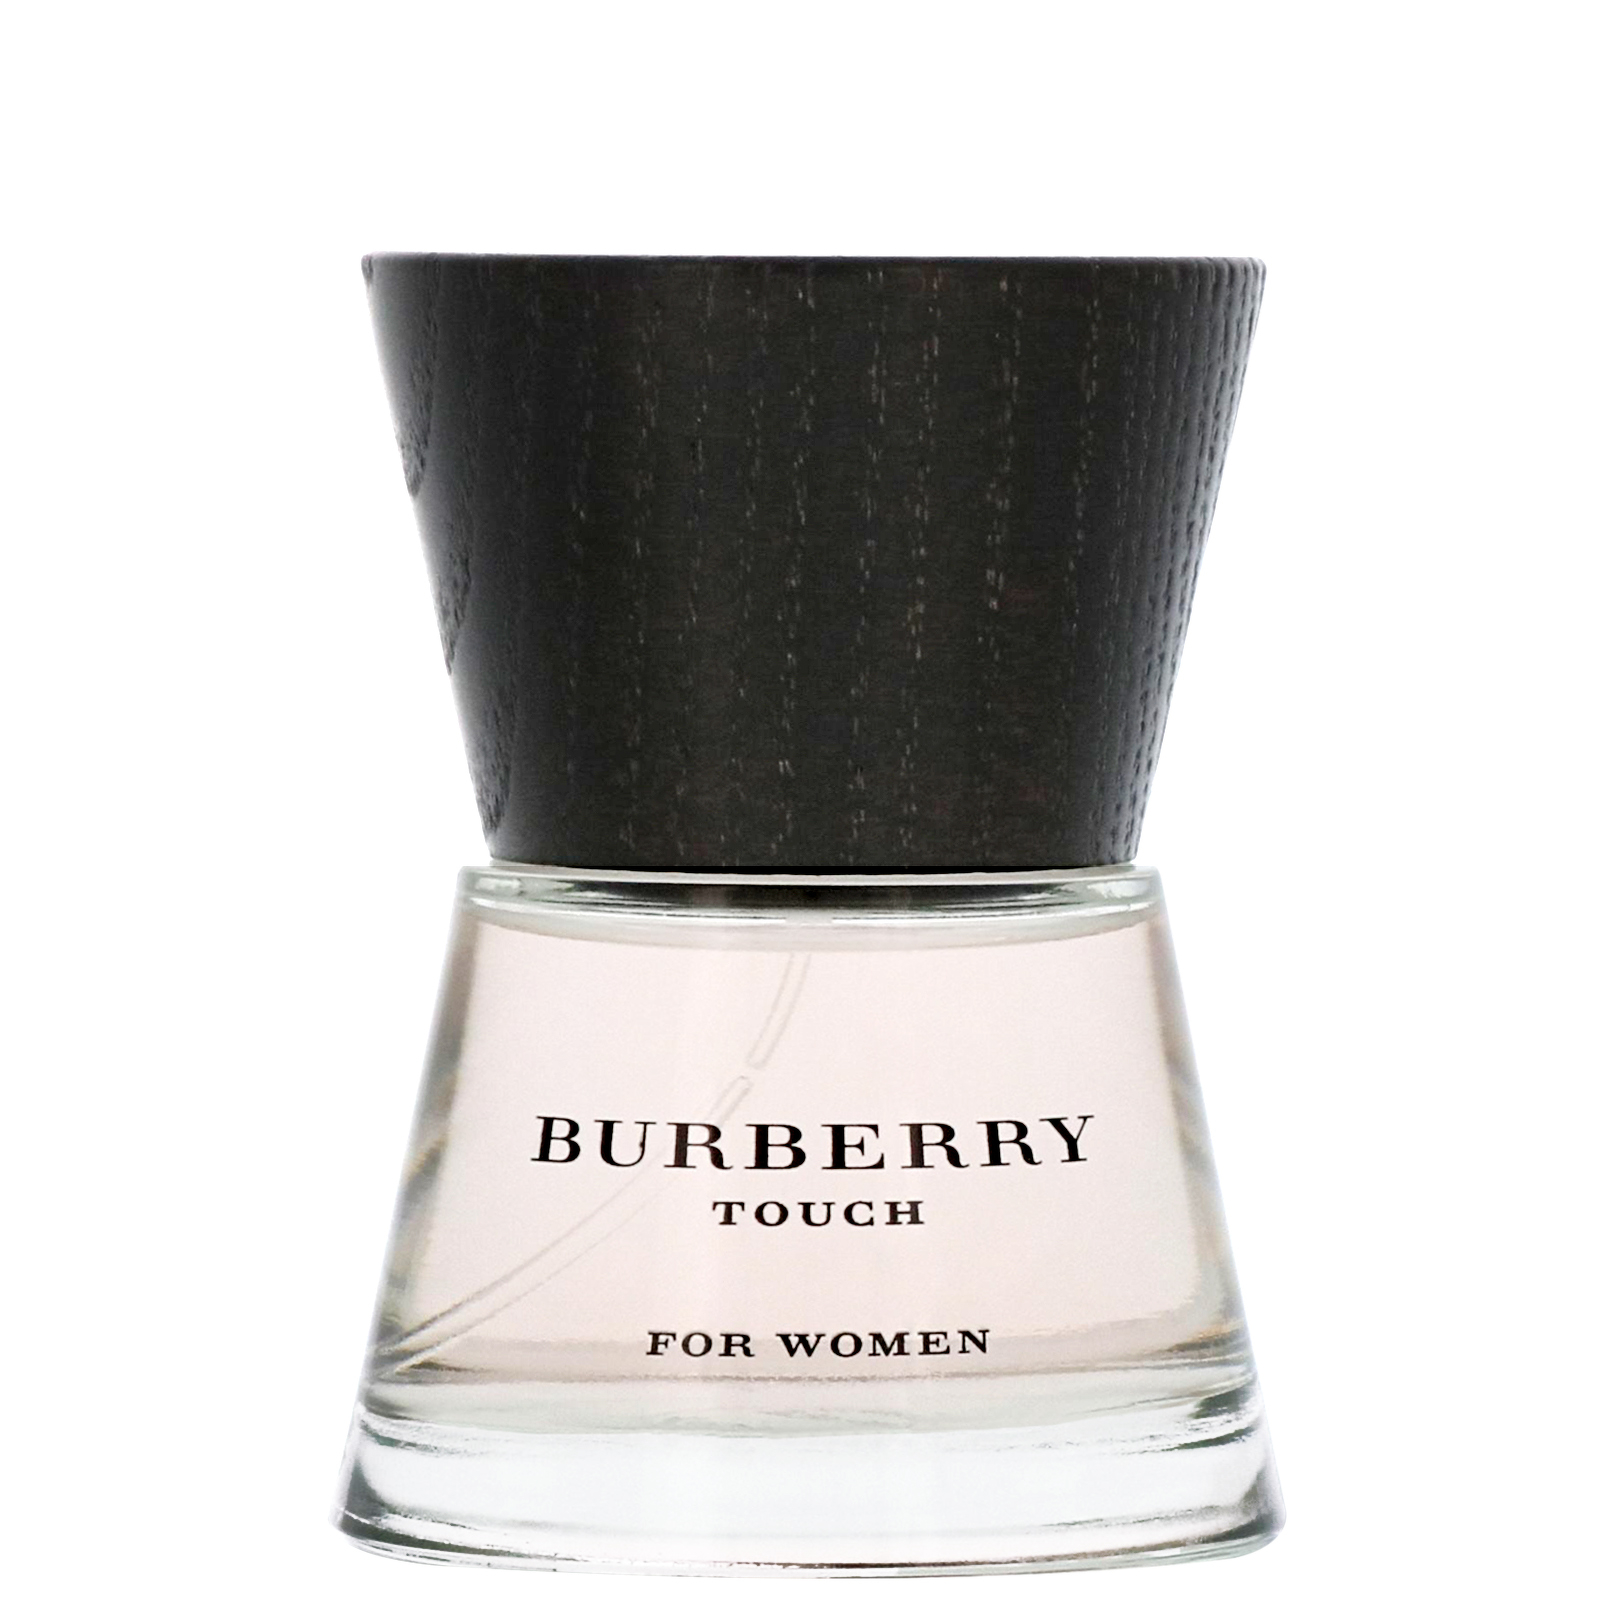 Burberry Touch For Women Eau de Parfum Spray 30ml